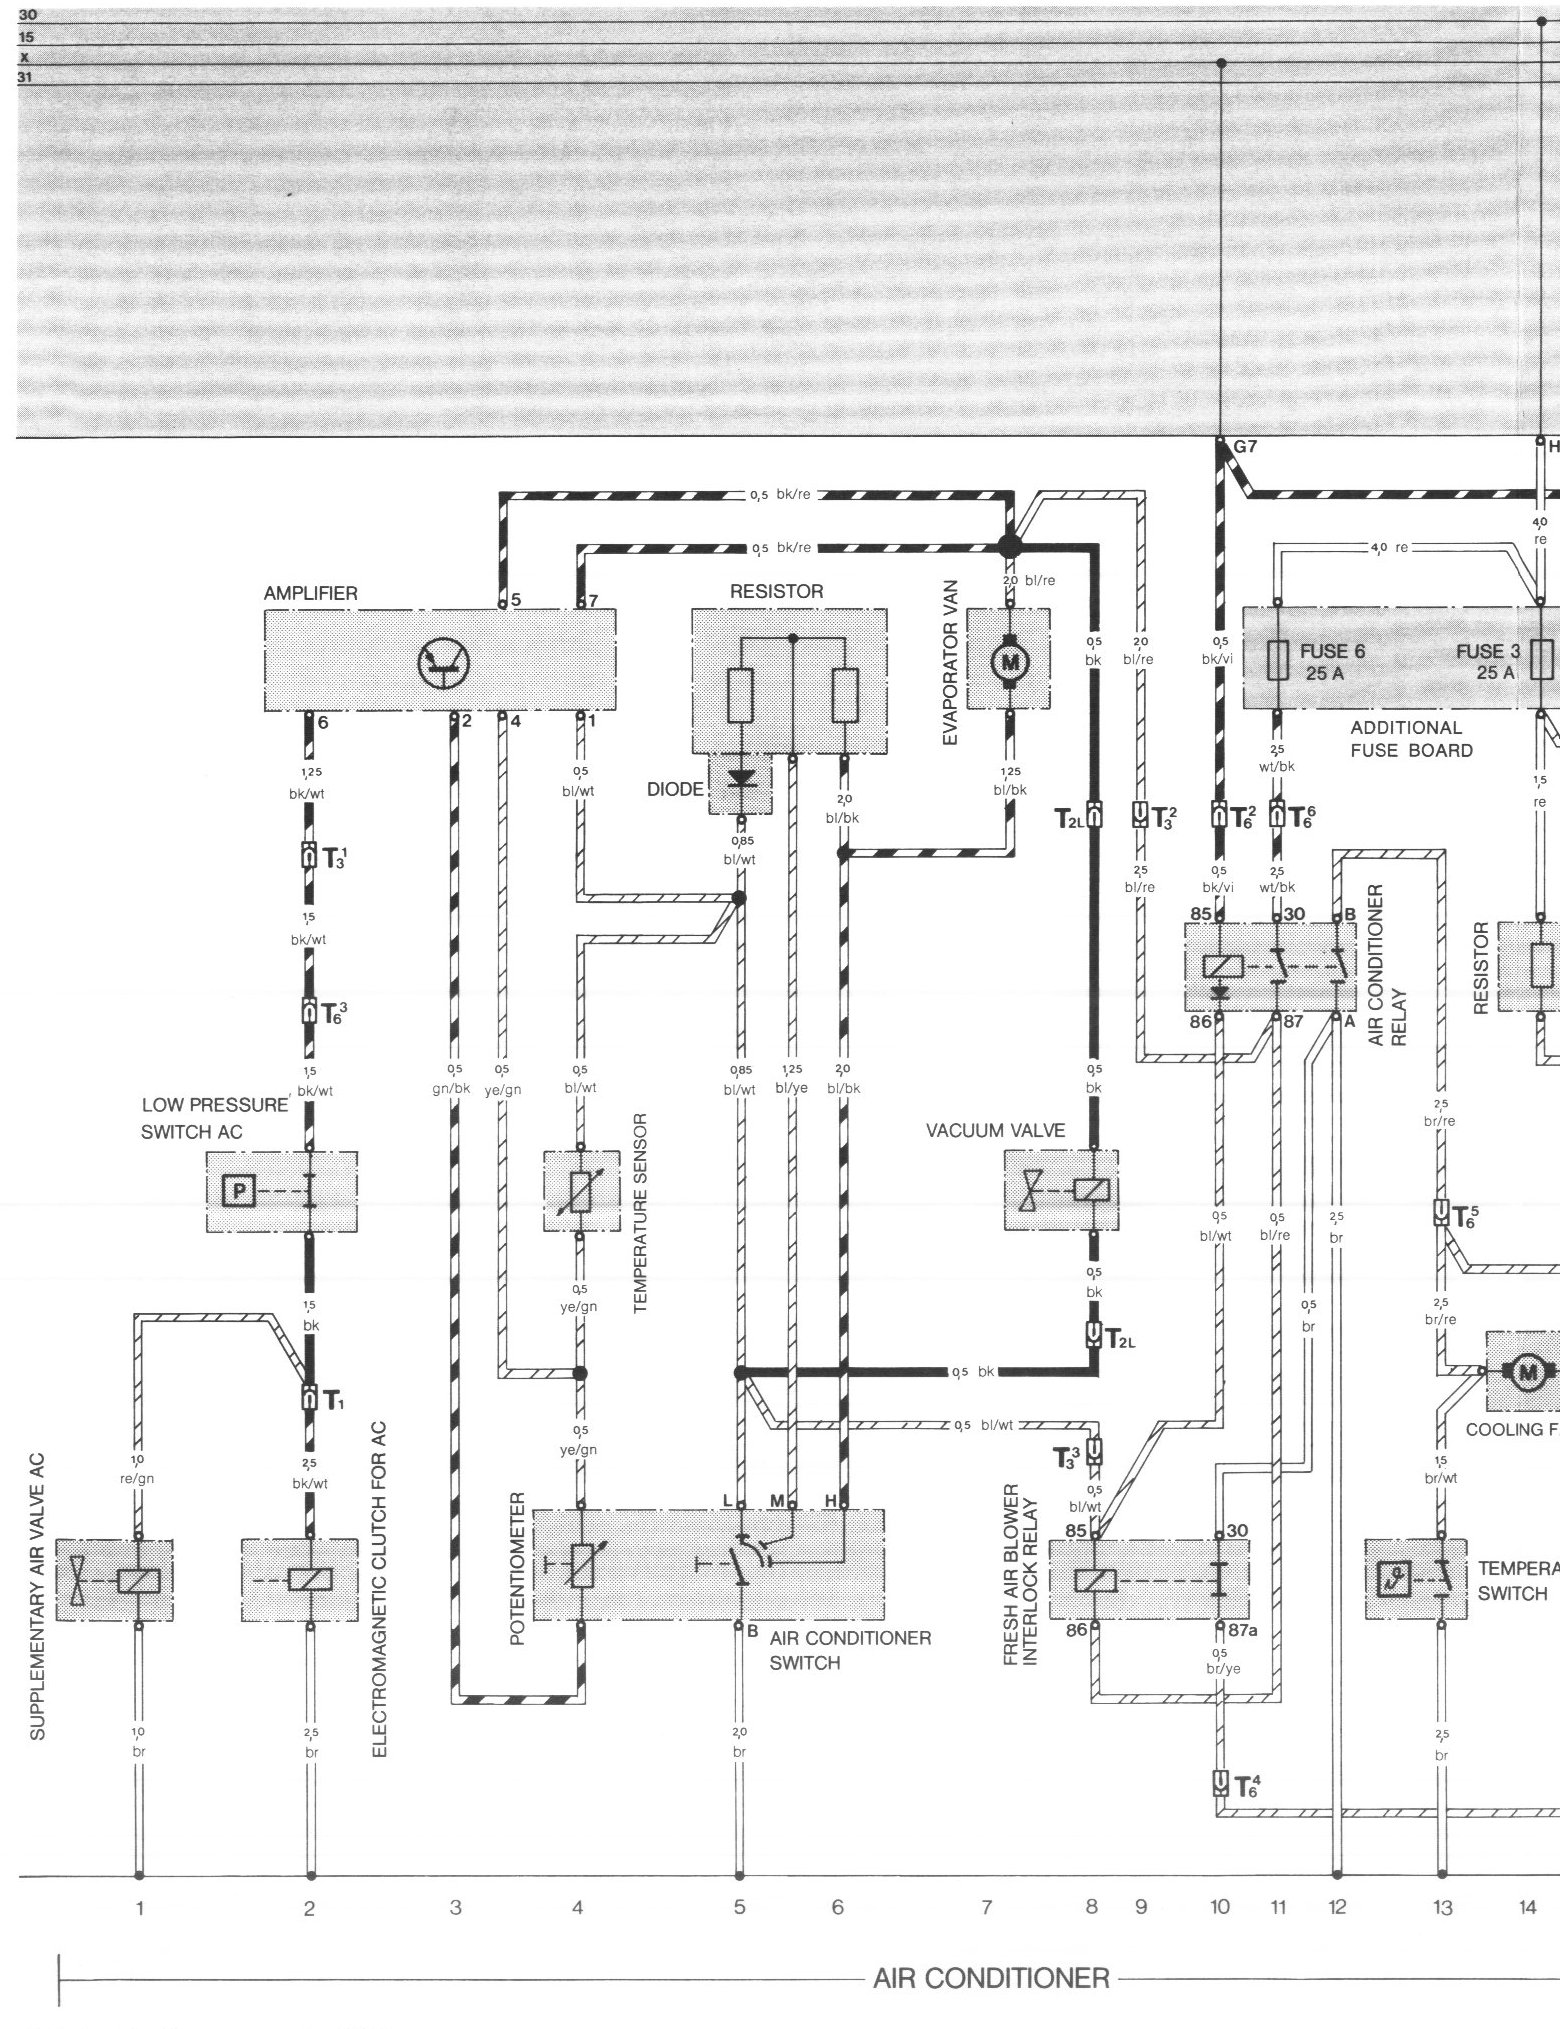 1992 Porsche Engine Diagram List Of Schematic Circuit Fenwal Automatic Ignition Module Wiring 944 S2 Just Data Rh Ag Skiphire Co Uk